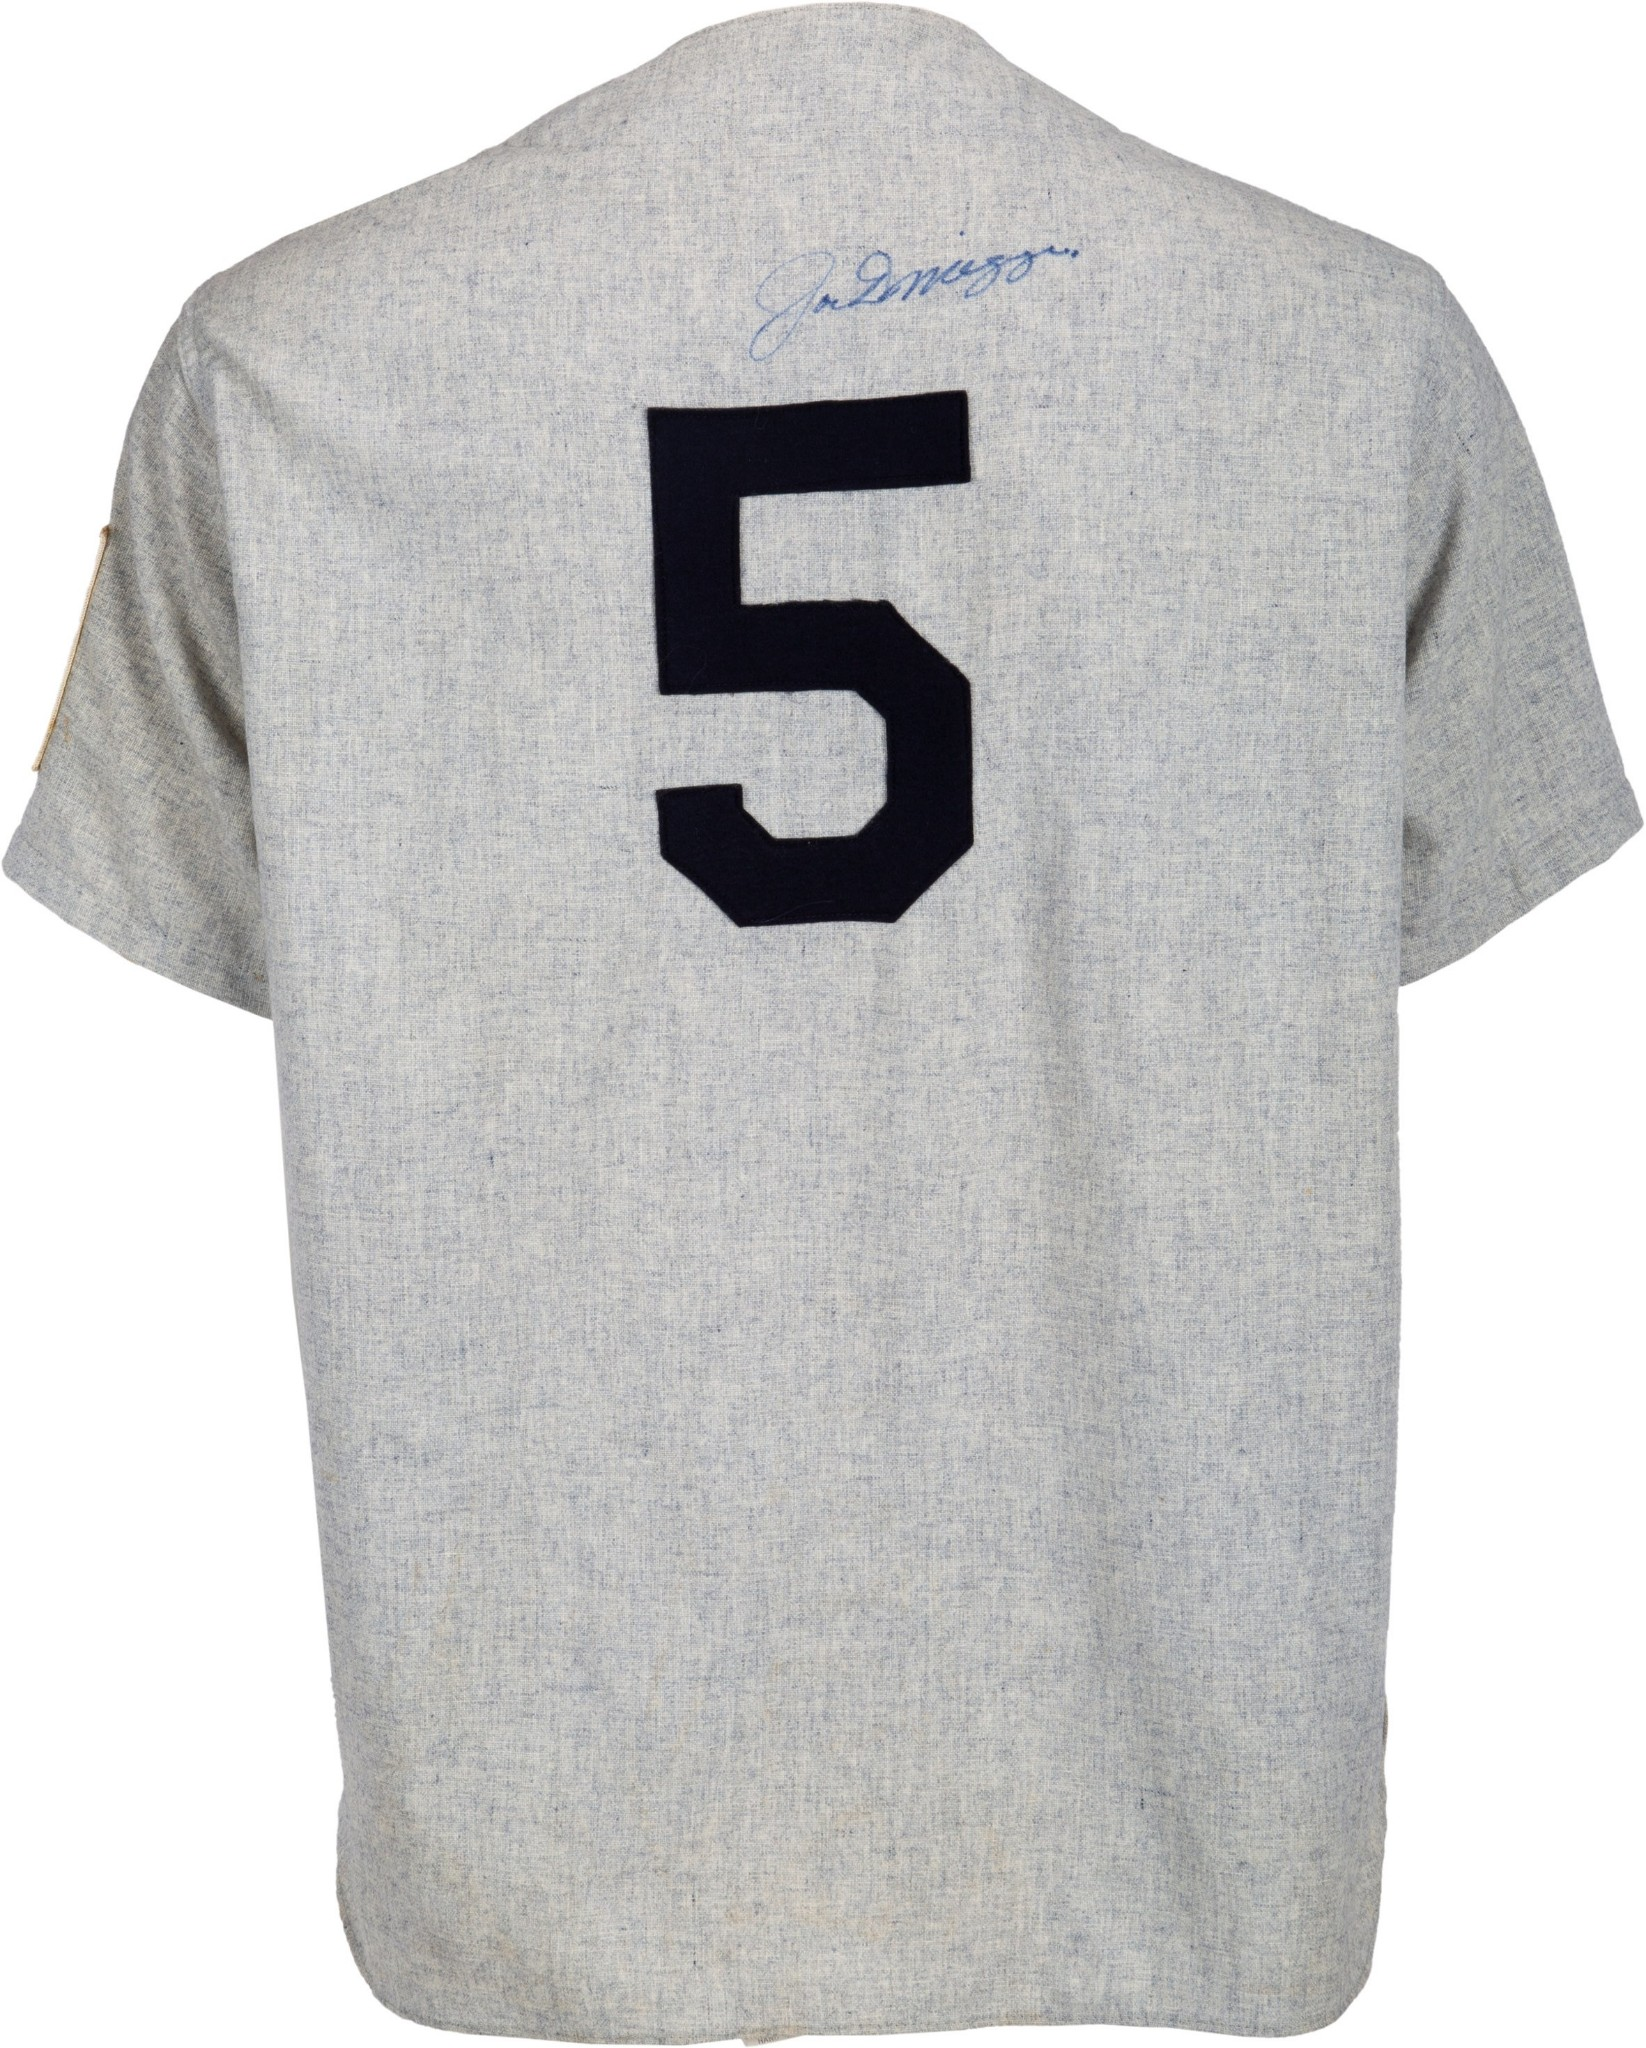 save off 402fa 0720a Details about Beautiful Joe Dimaggio Signed Authentic 1939 New York Yankees  Jersey PSA DNA COA